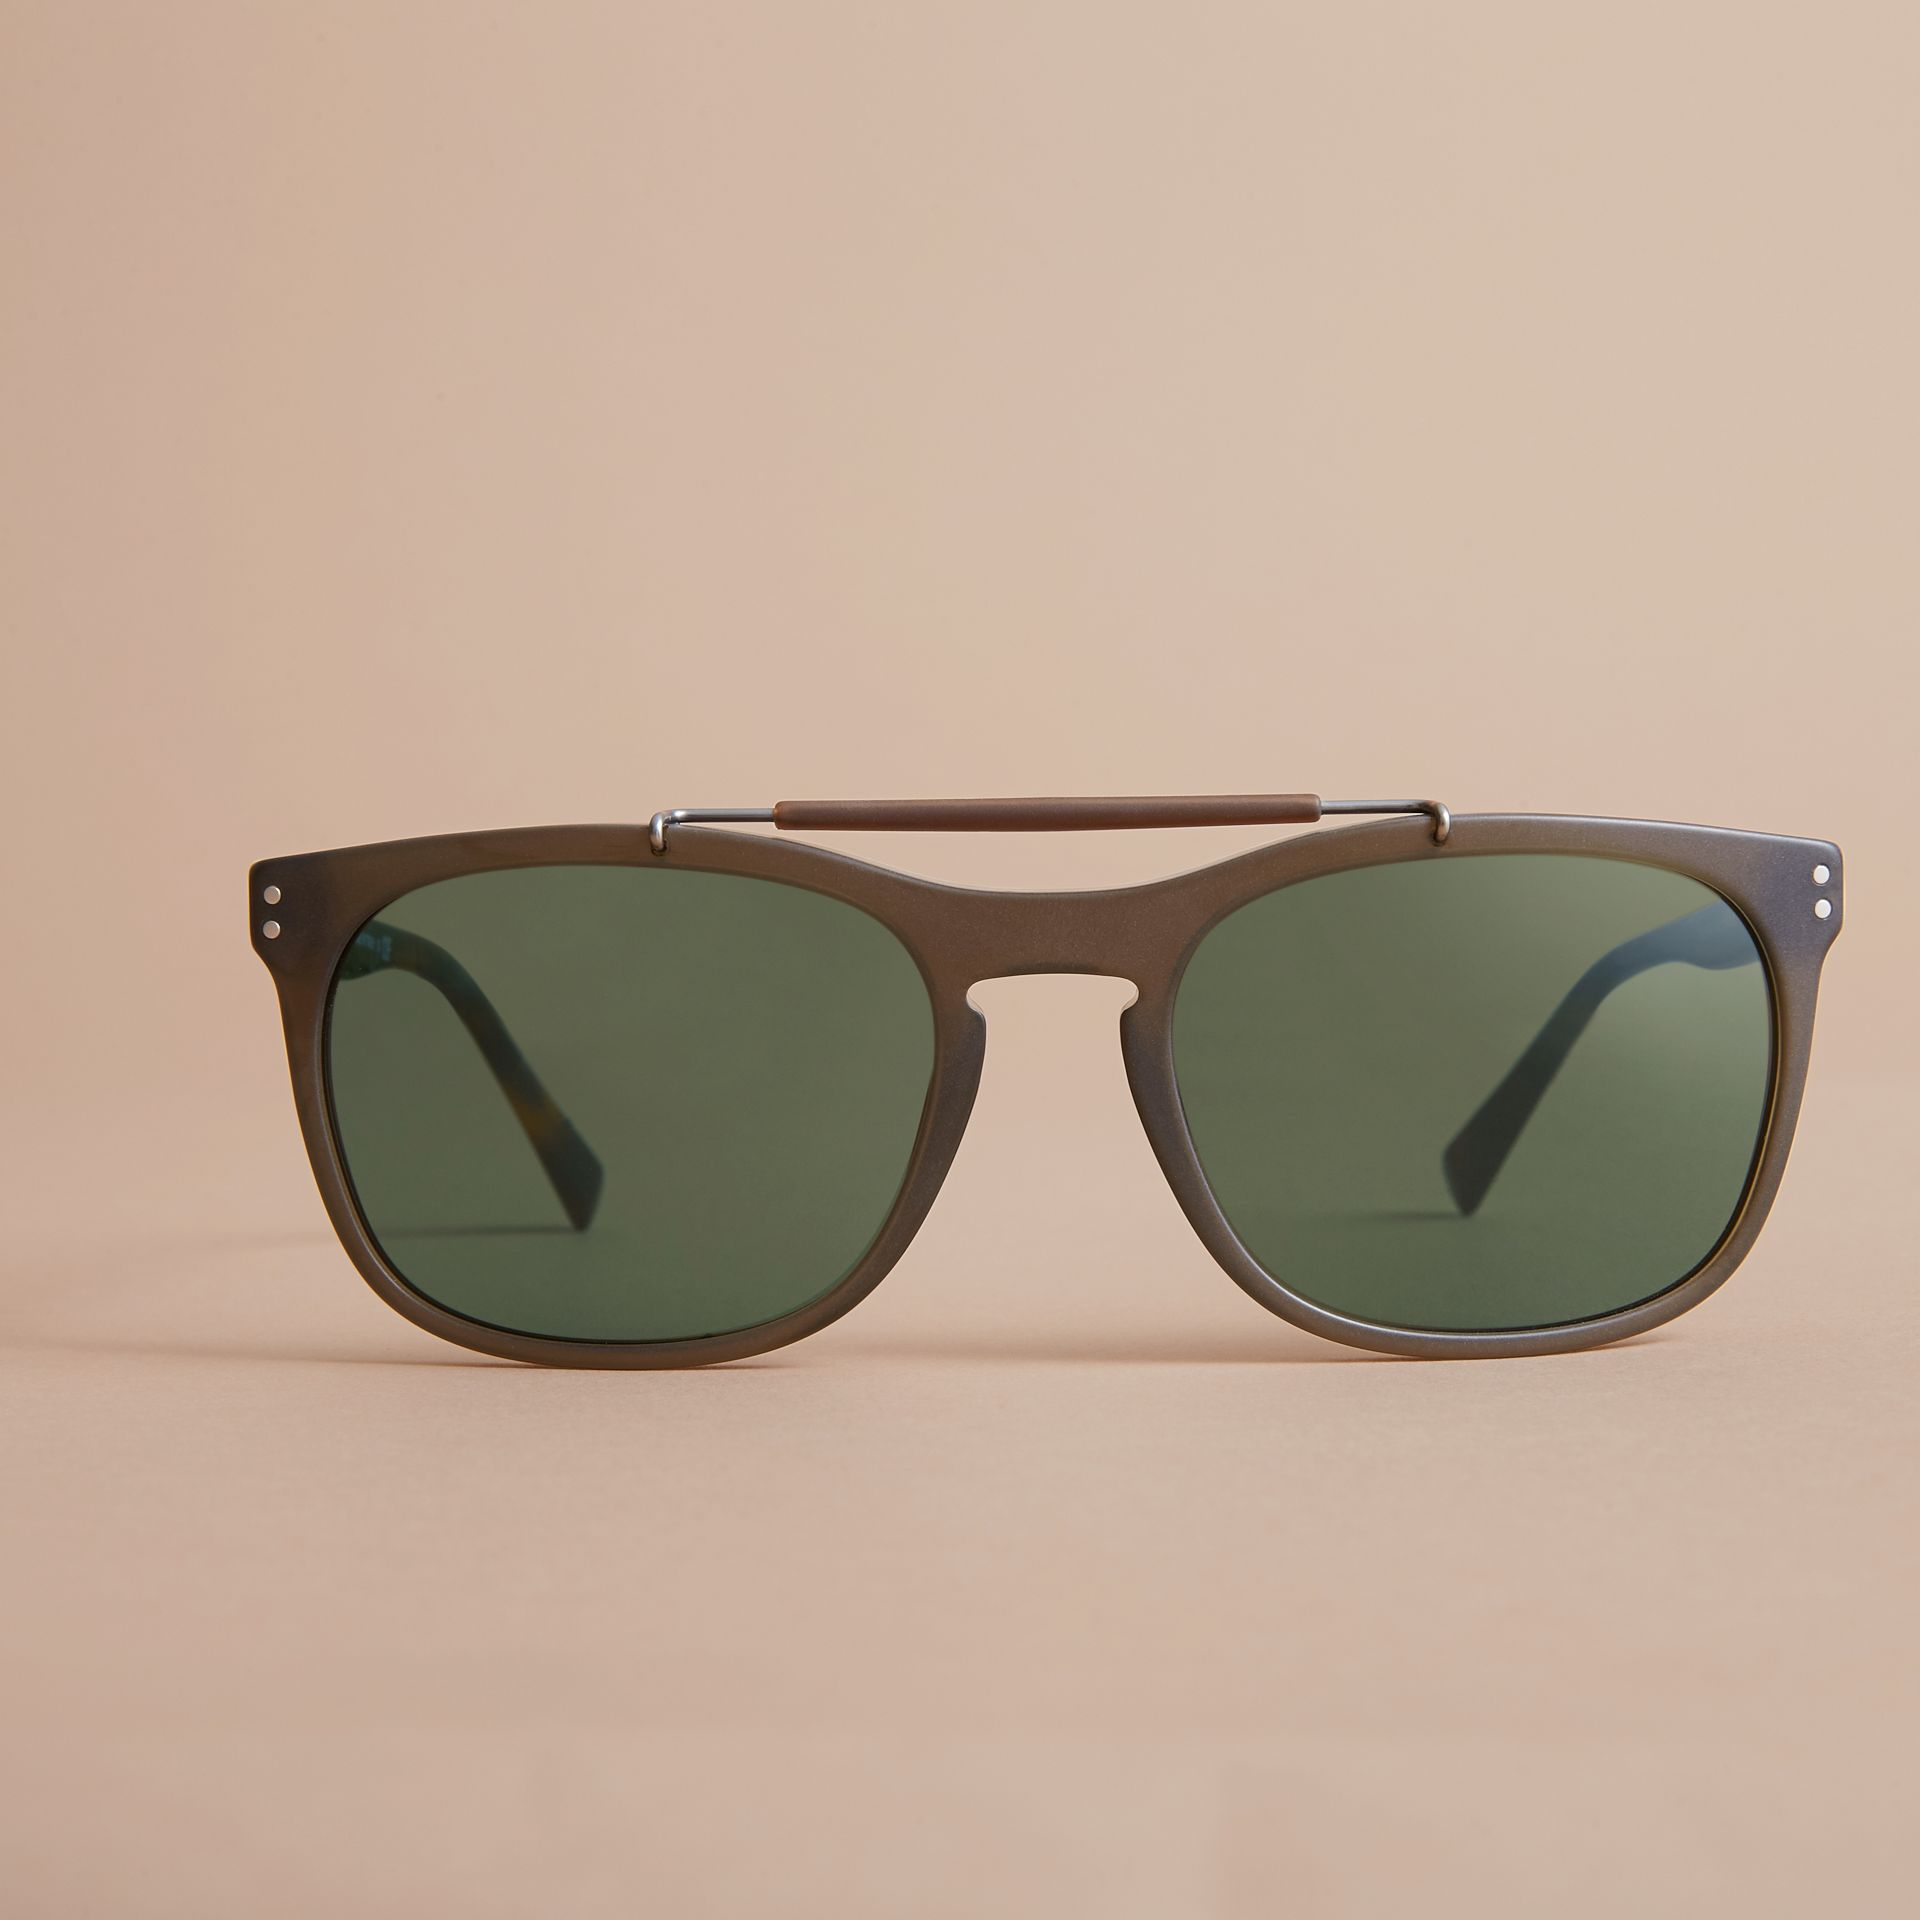 Top Bar Square Frame Sunglasses in Olive | Burberry United States - gallery image 2